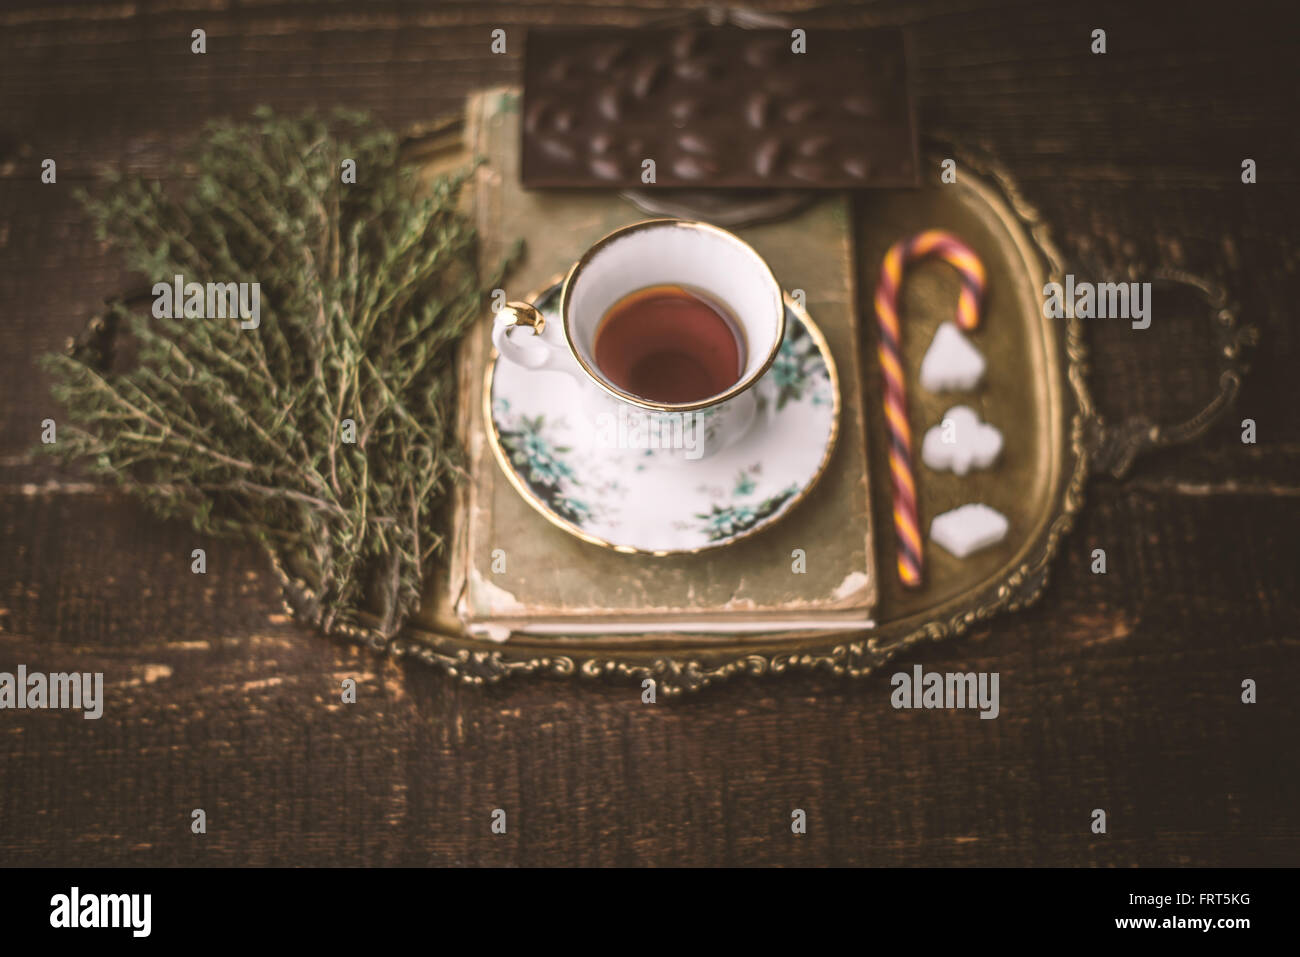 Tea set with  blurred herb and chocolate on the wooden table horizontal - Stock Image